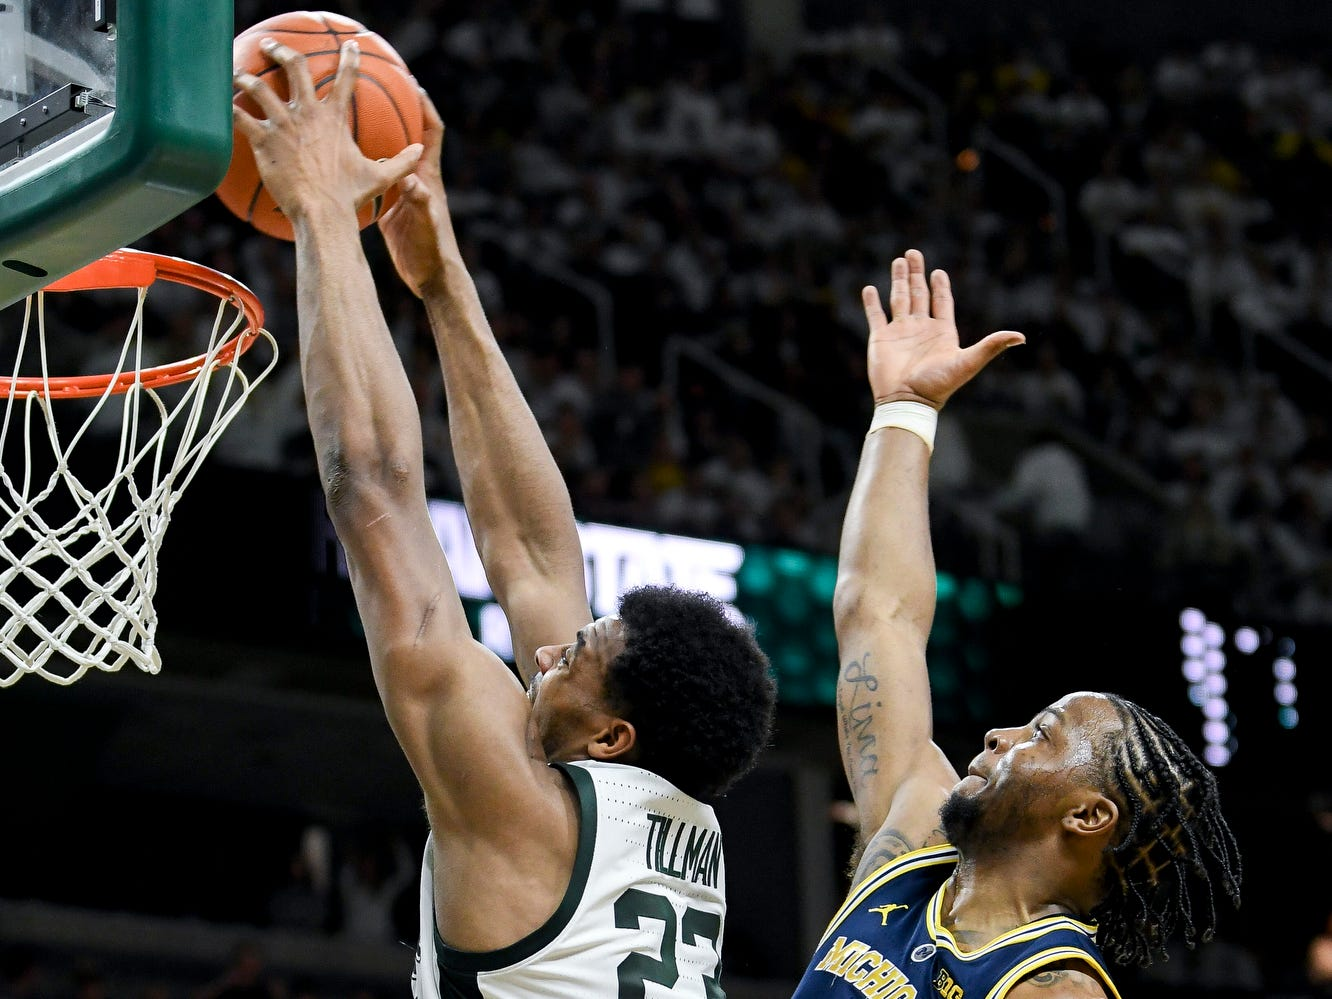 Michigan State's Xavier Tillman, left, dunks as Michigan's Zavier Simpson defends during the first half on Saturday, March 9, 2019, at the Breslin Center in East Lansing.